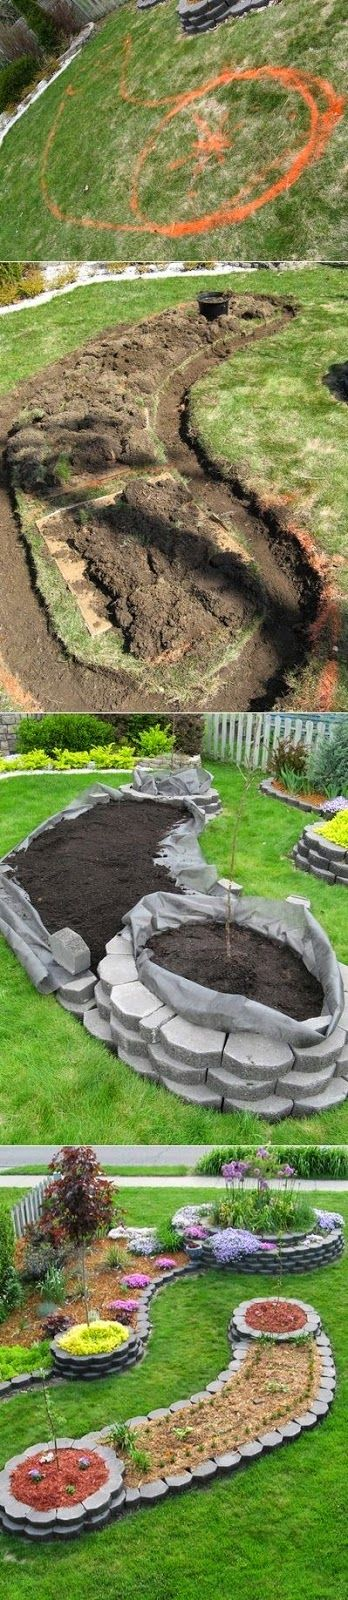 422 Best Images About Gardens Layouts Ideas On Pinterest   More Best Gardens Raised Beds And ...